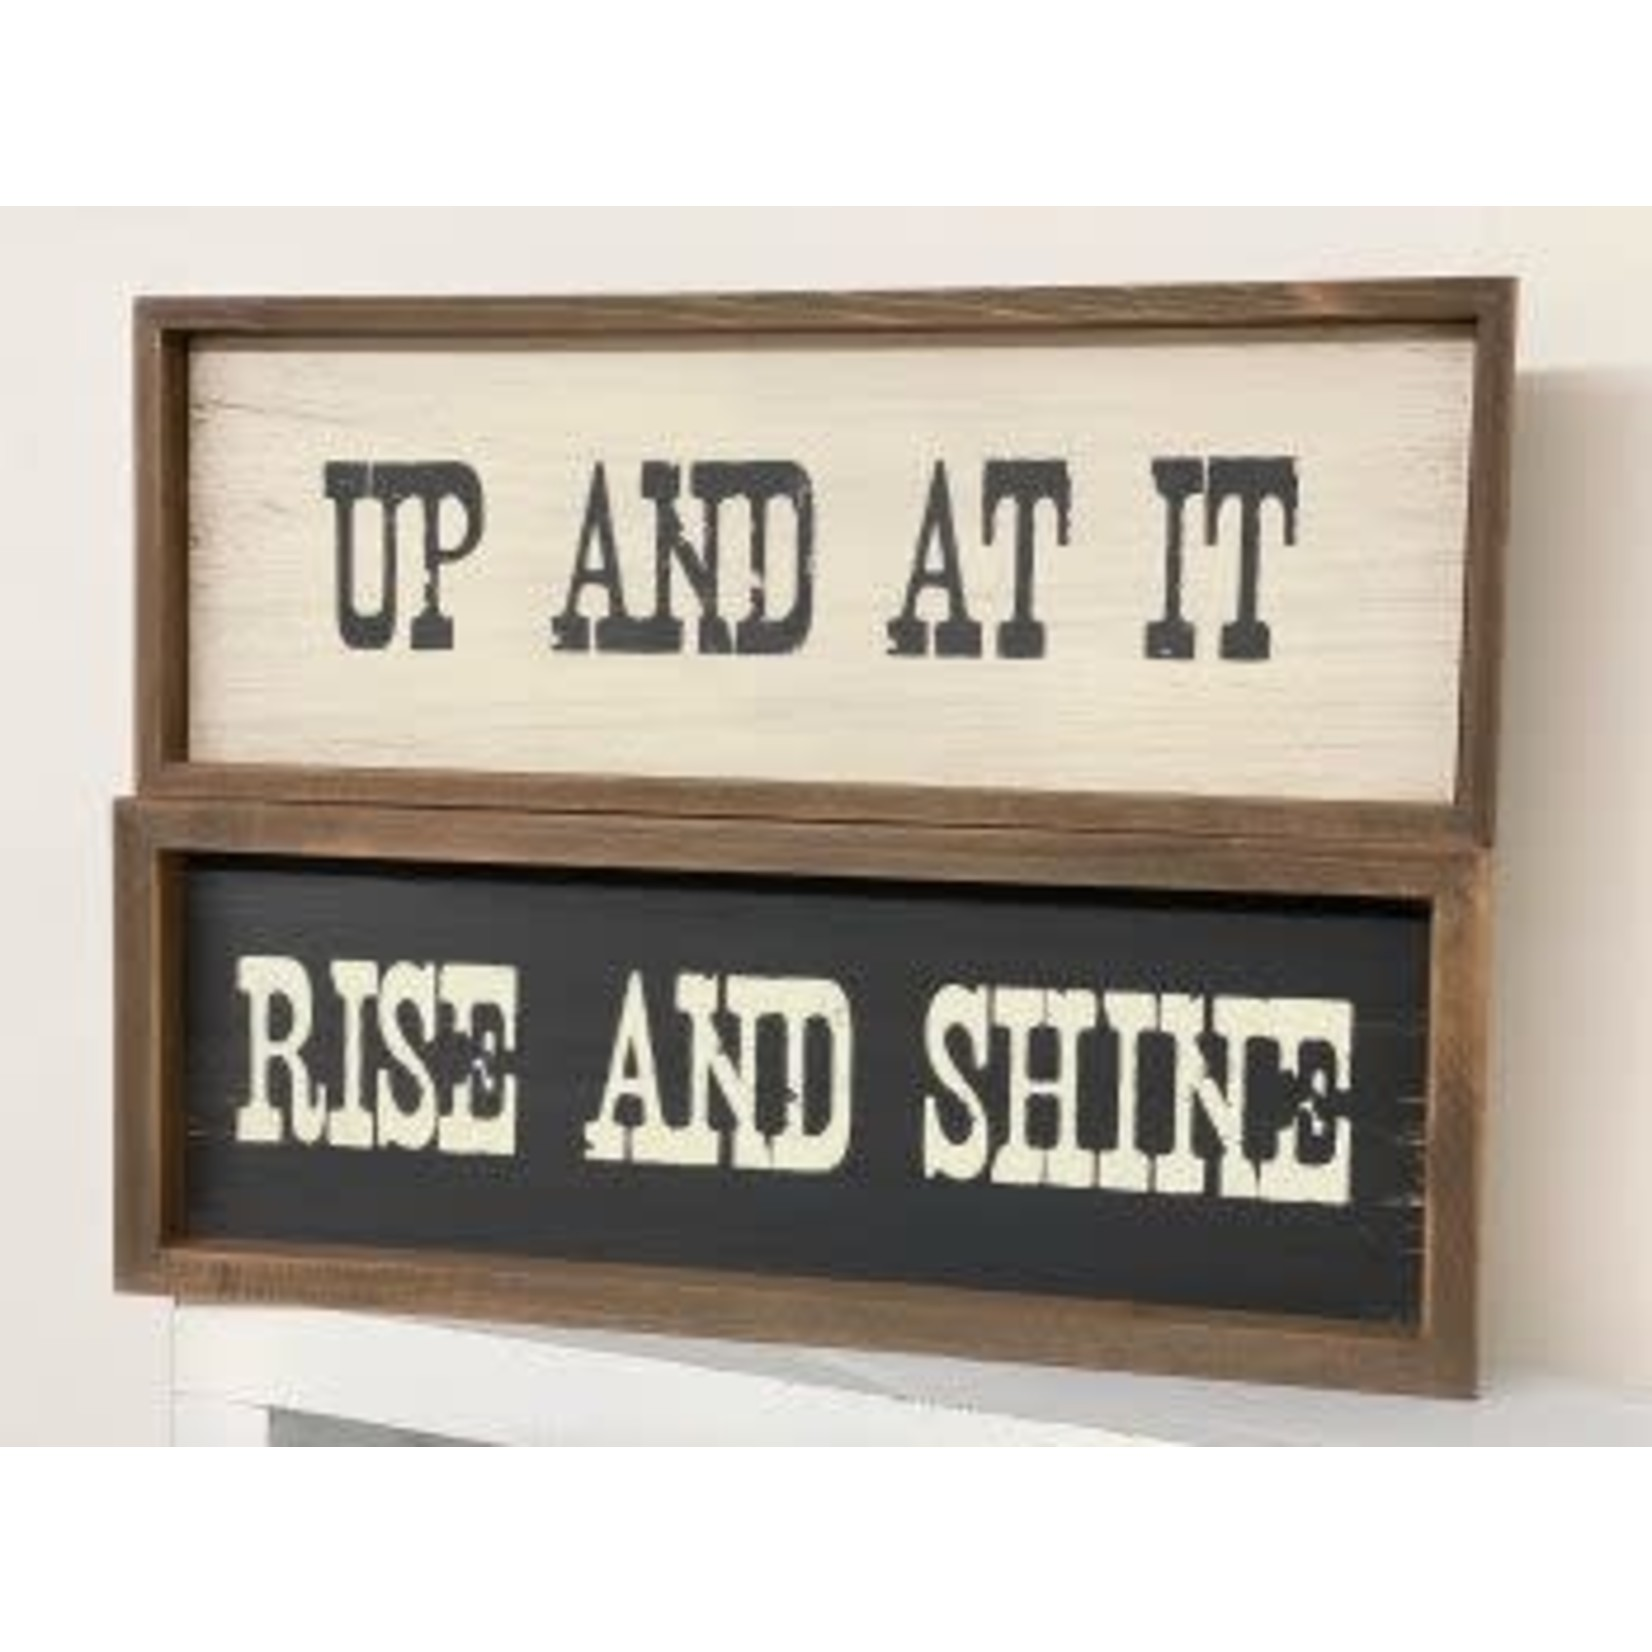 Rise & Shine & Up and At It - 2 Sided - Ledge Sign